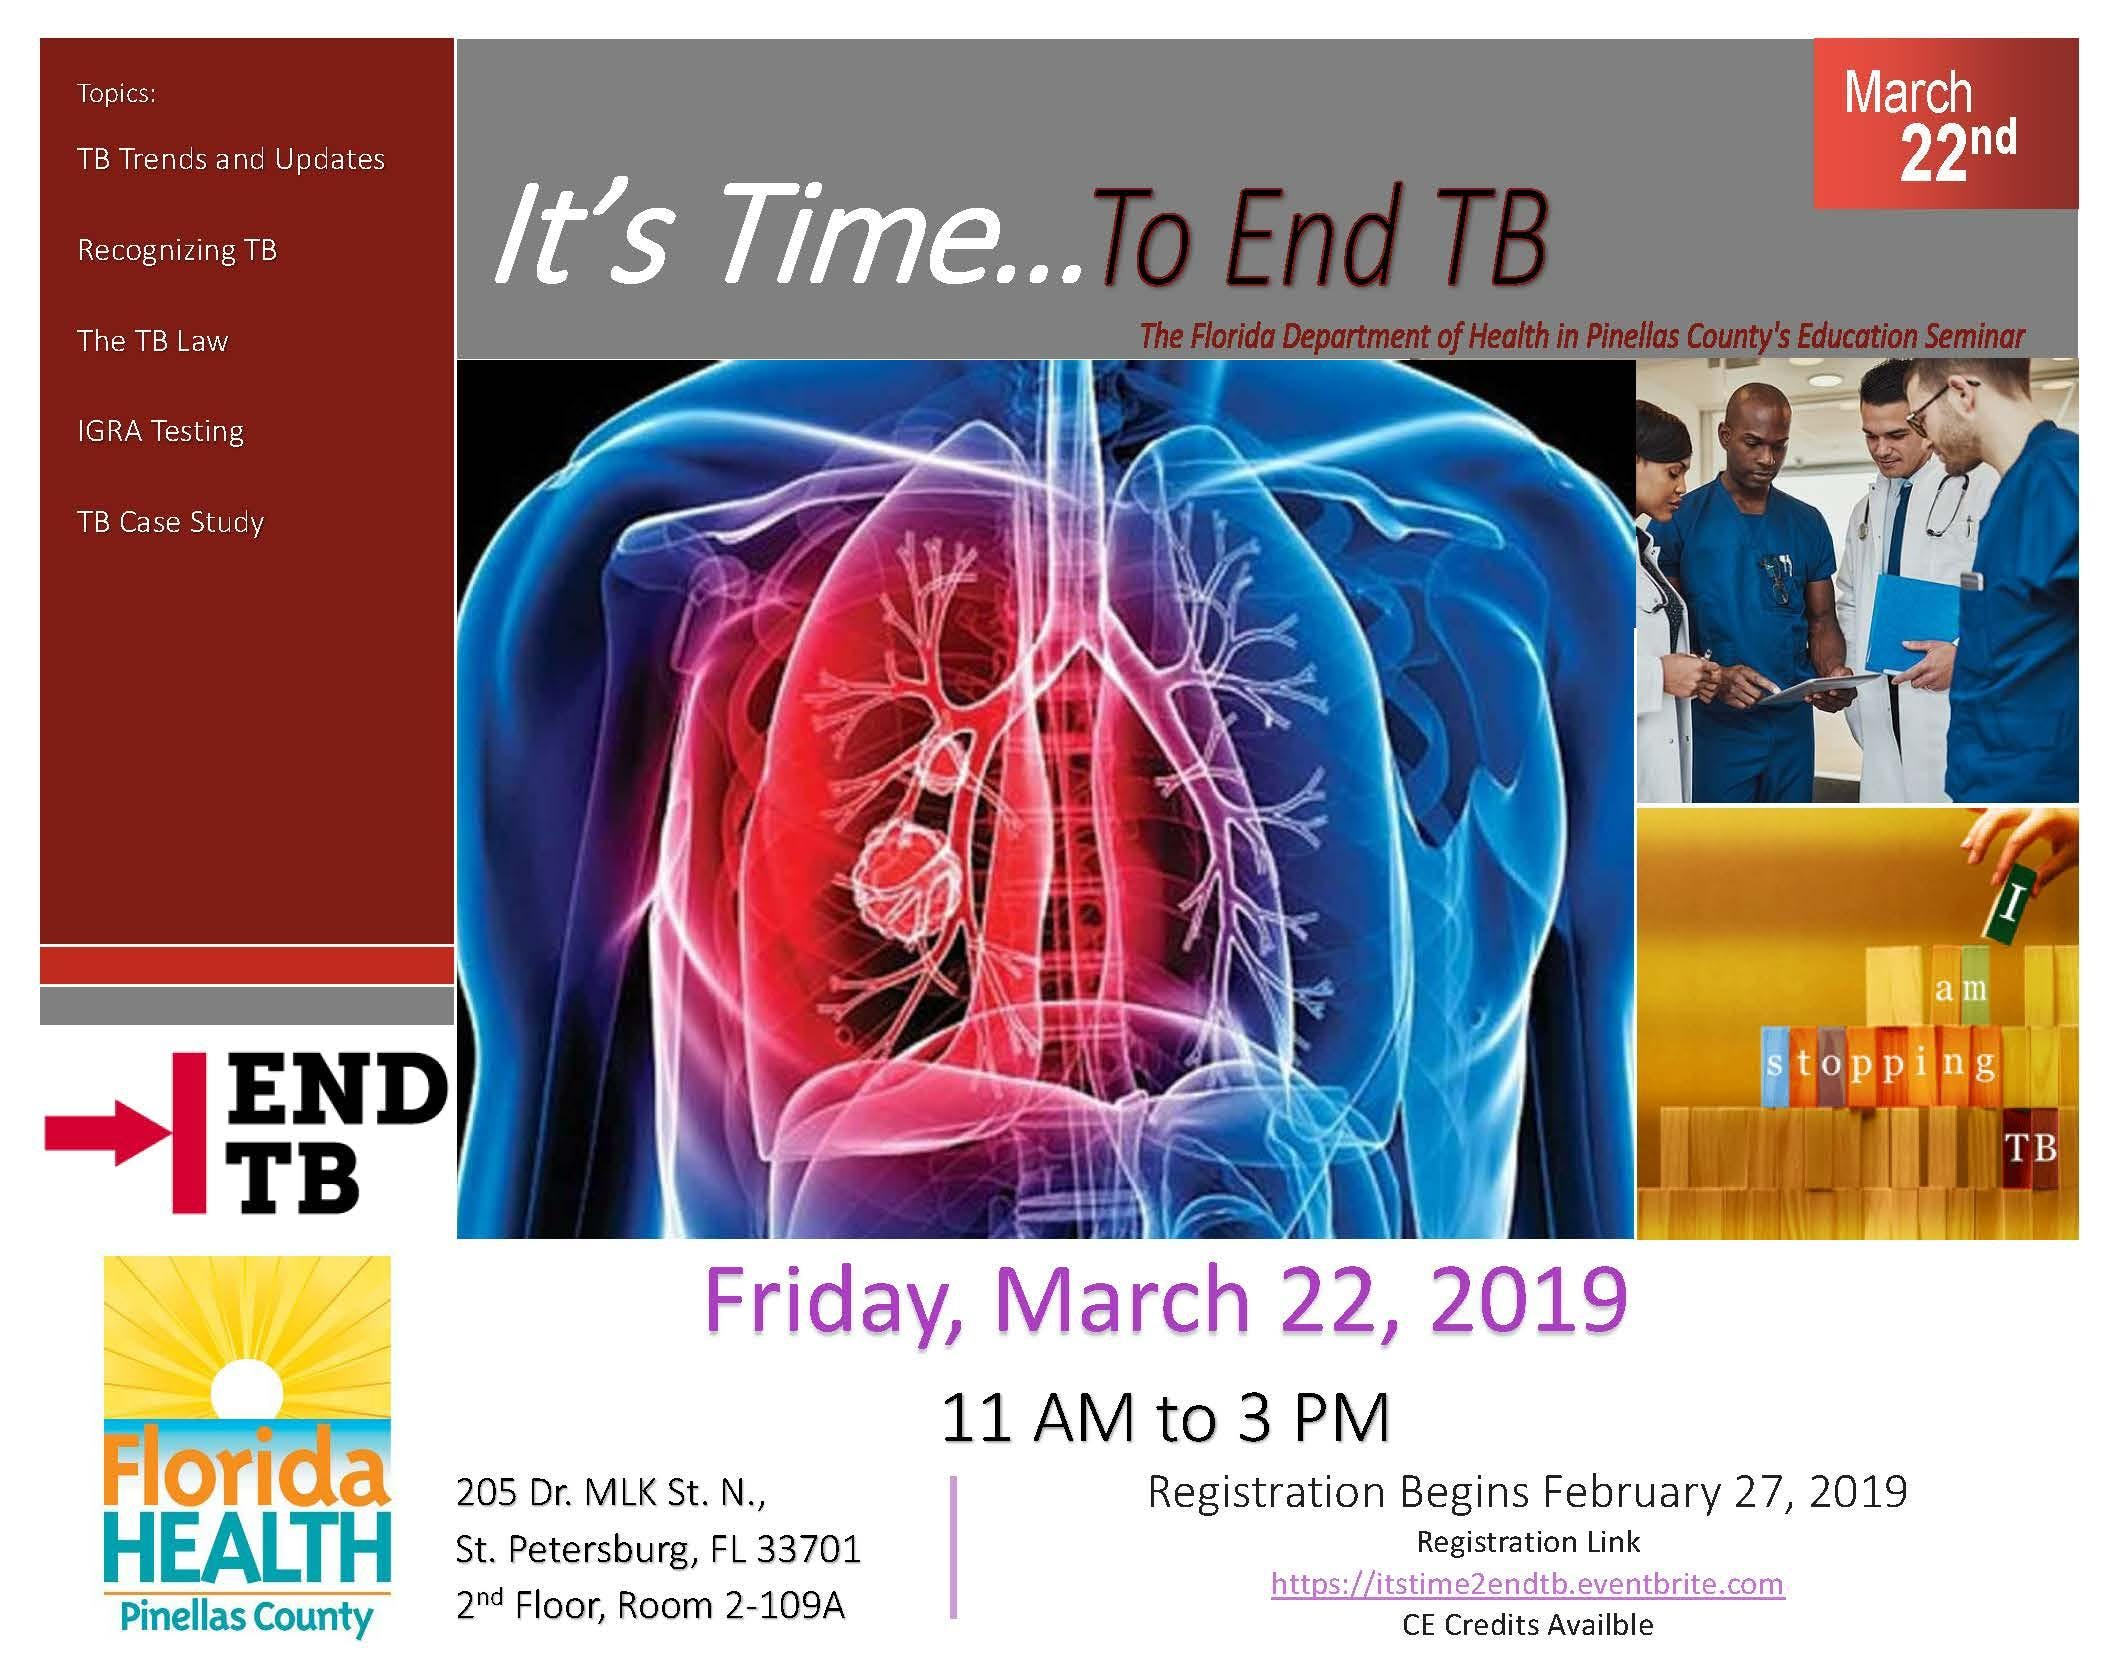 It's Time... To End TB, Educational Seminar